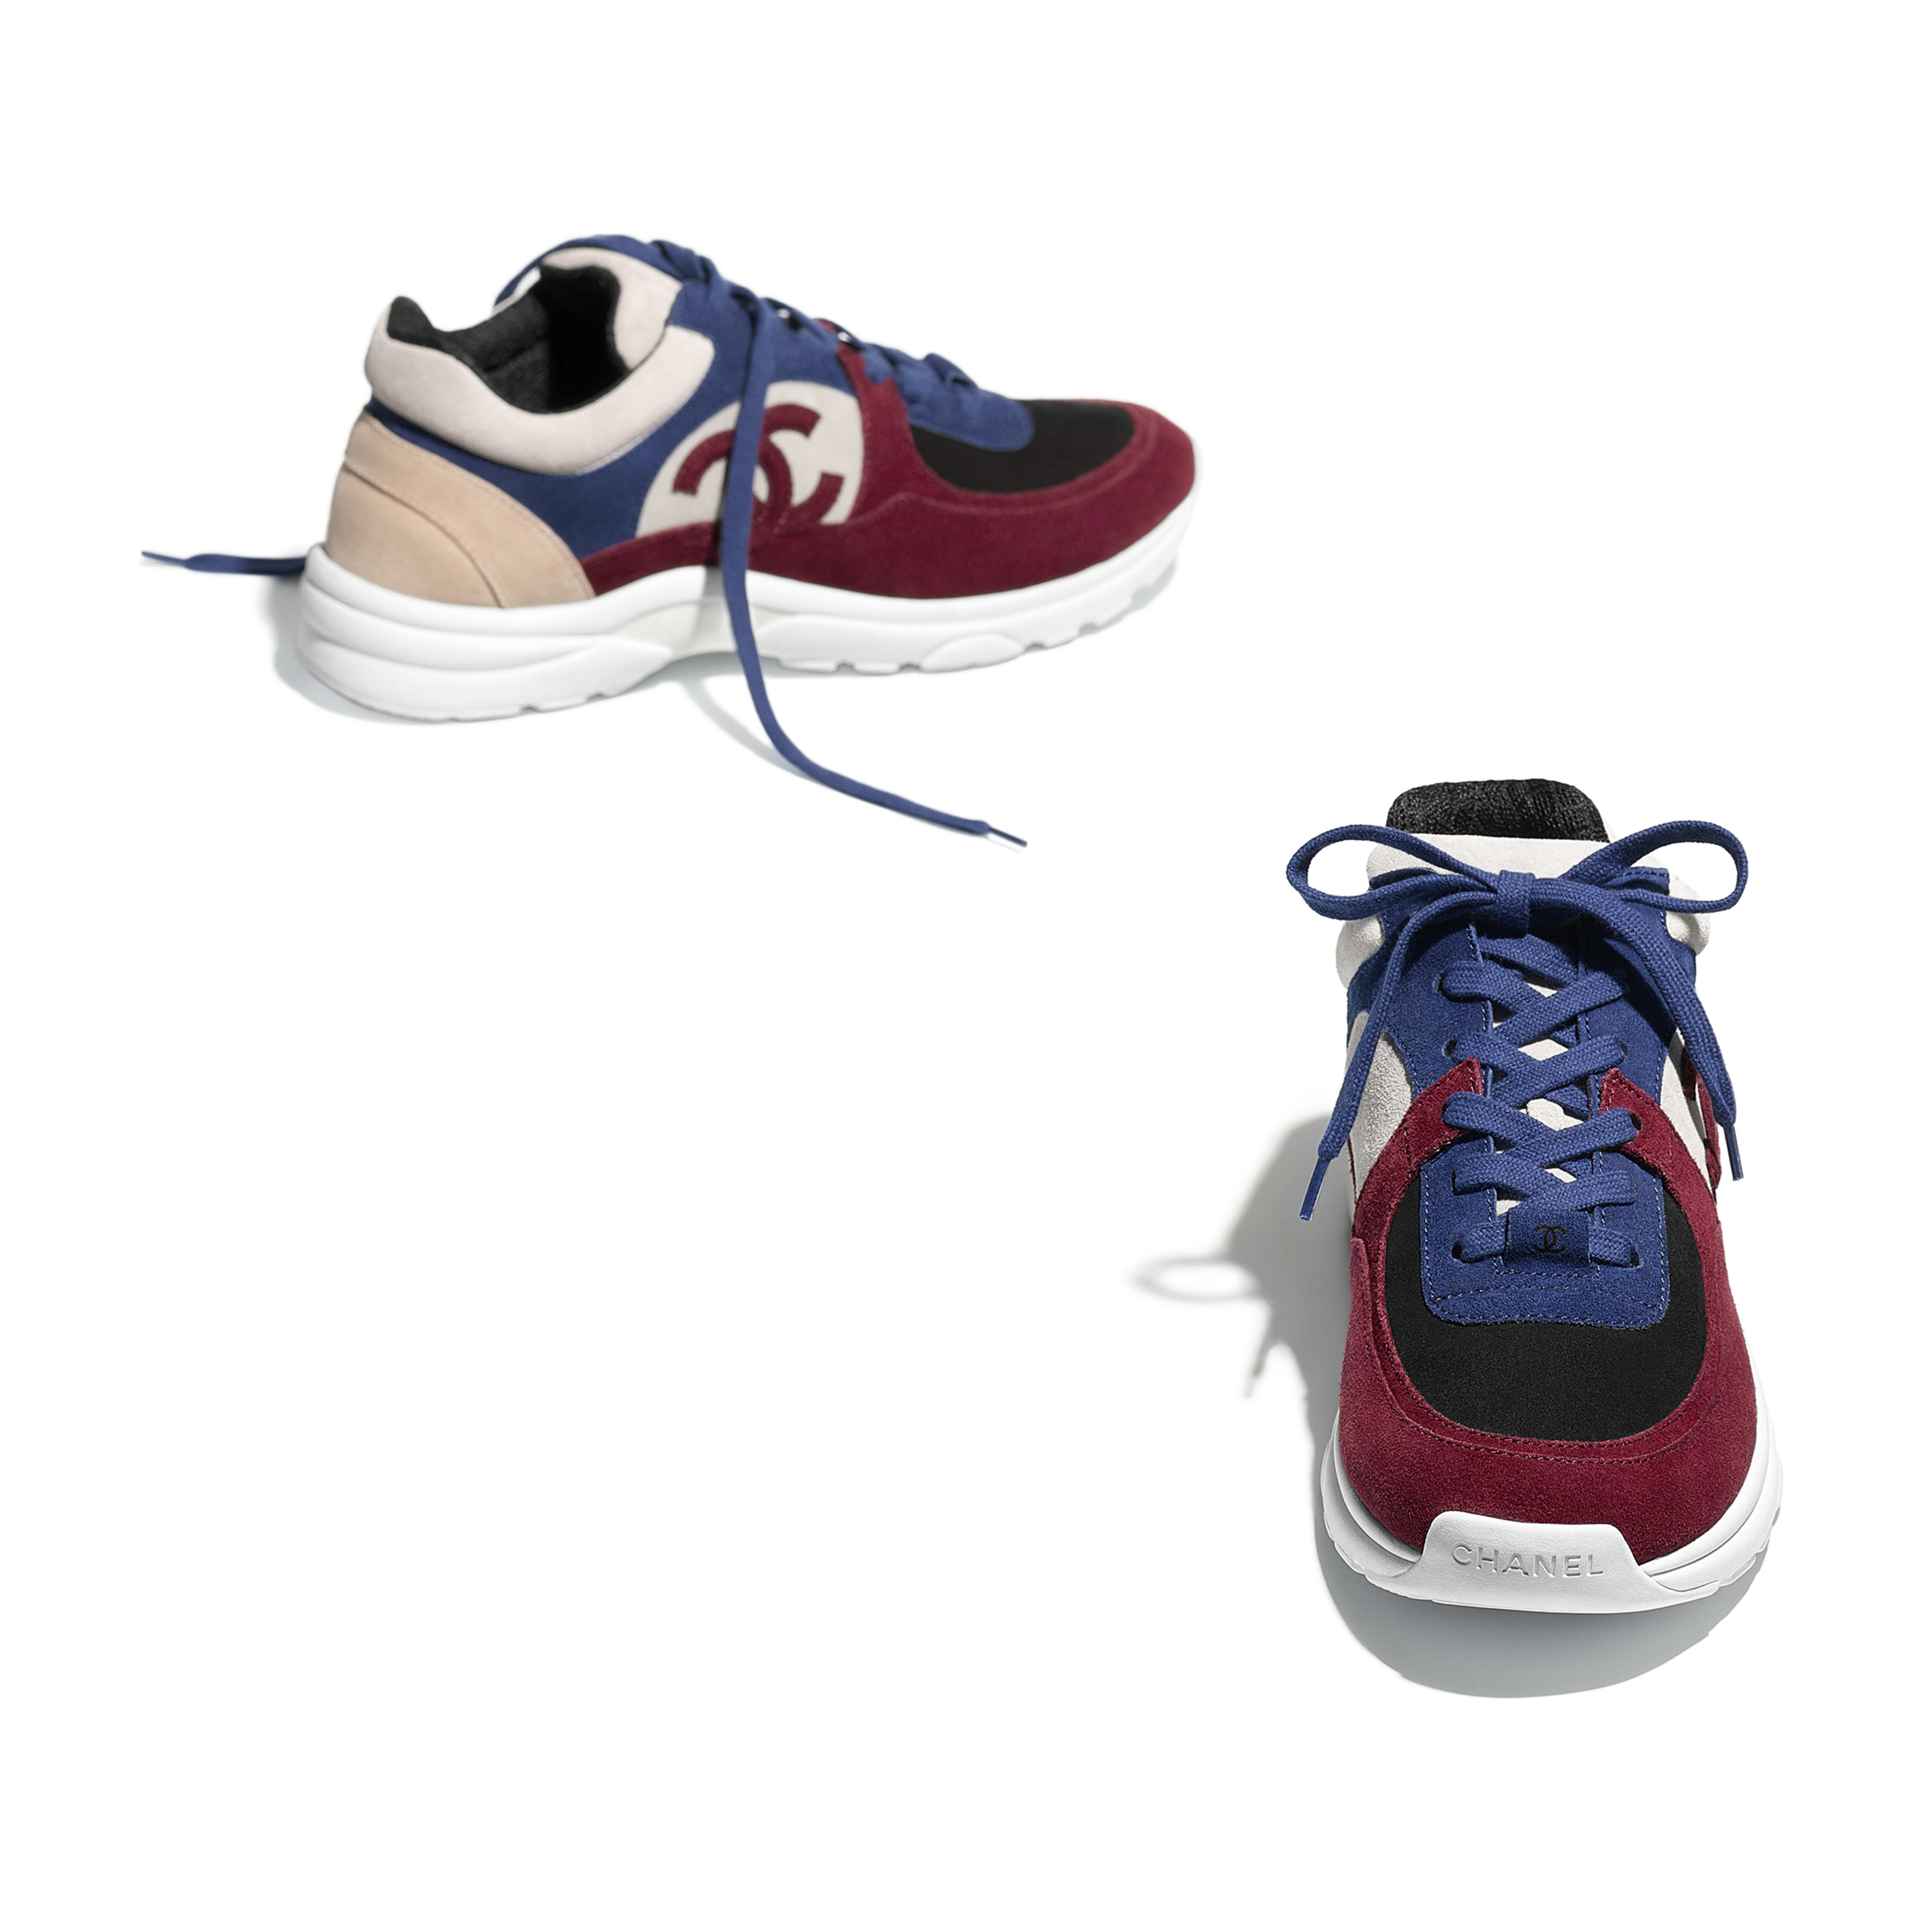 Sneakers - Navy Blue & Red - Suede Calfskin - Other view - see full sized version